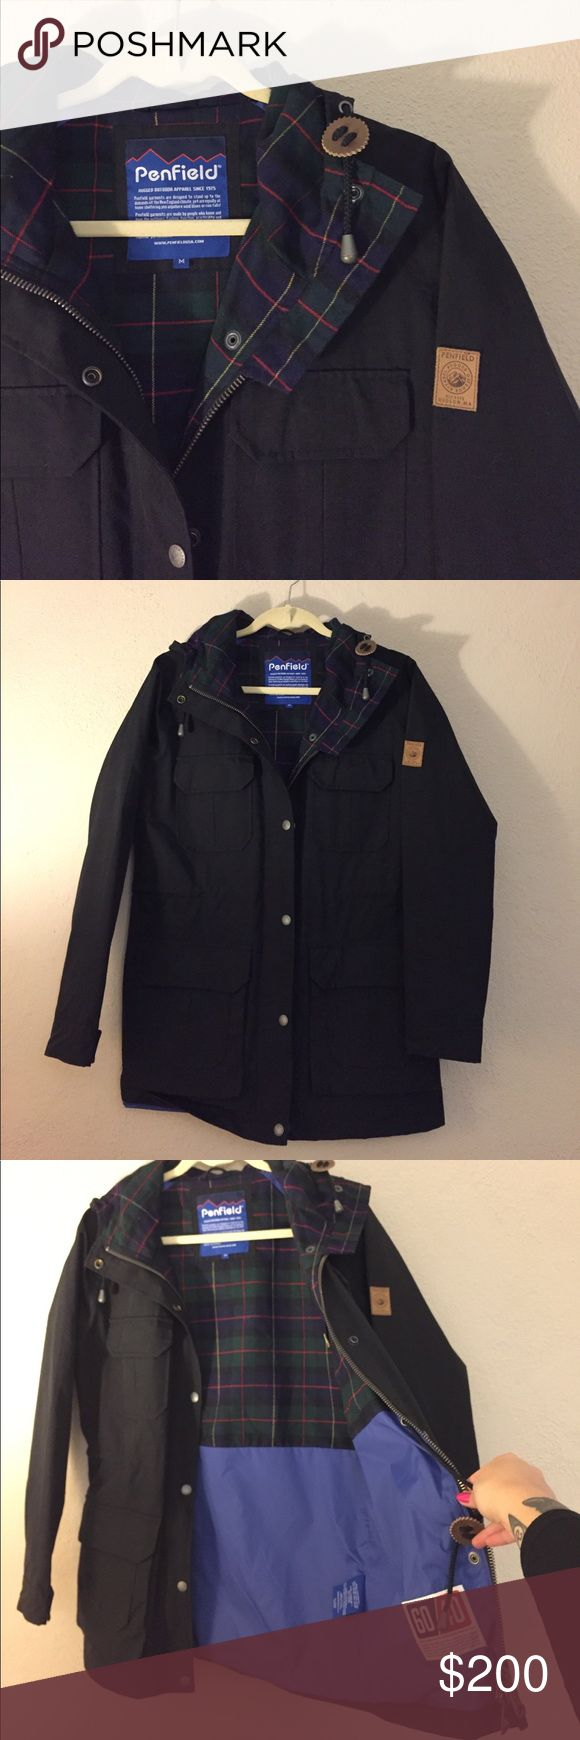 Penfield Kasson Black Parka Jacket Medium Never worn outside of my house and in perfect condition. This is a version of their iconic Kasson parka from 2012. The interior has a plaid lining on the top half and blue material on the bottom. These parkas have alot of pockets to stash your items and there's even one on the back of the jacket and inside. To adjust the waist there is an internet drawstring. Please ask if you have any questions about sizing. Penfield Jackets & Coats